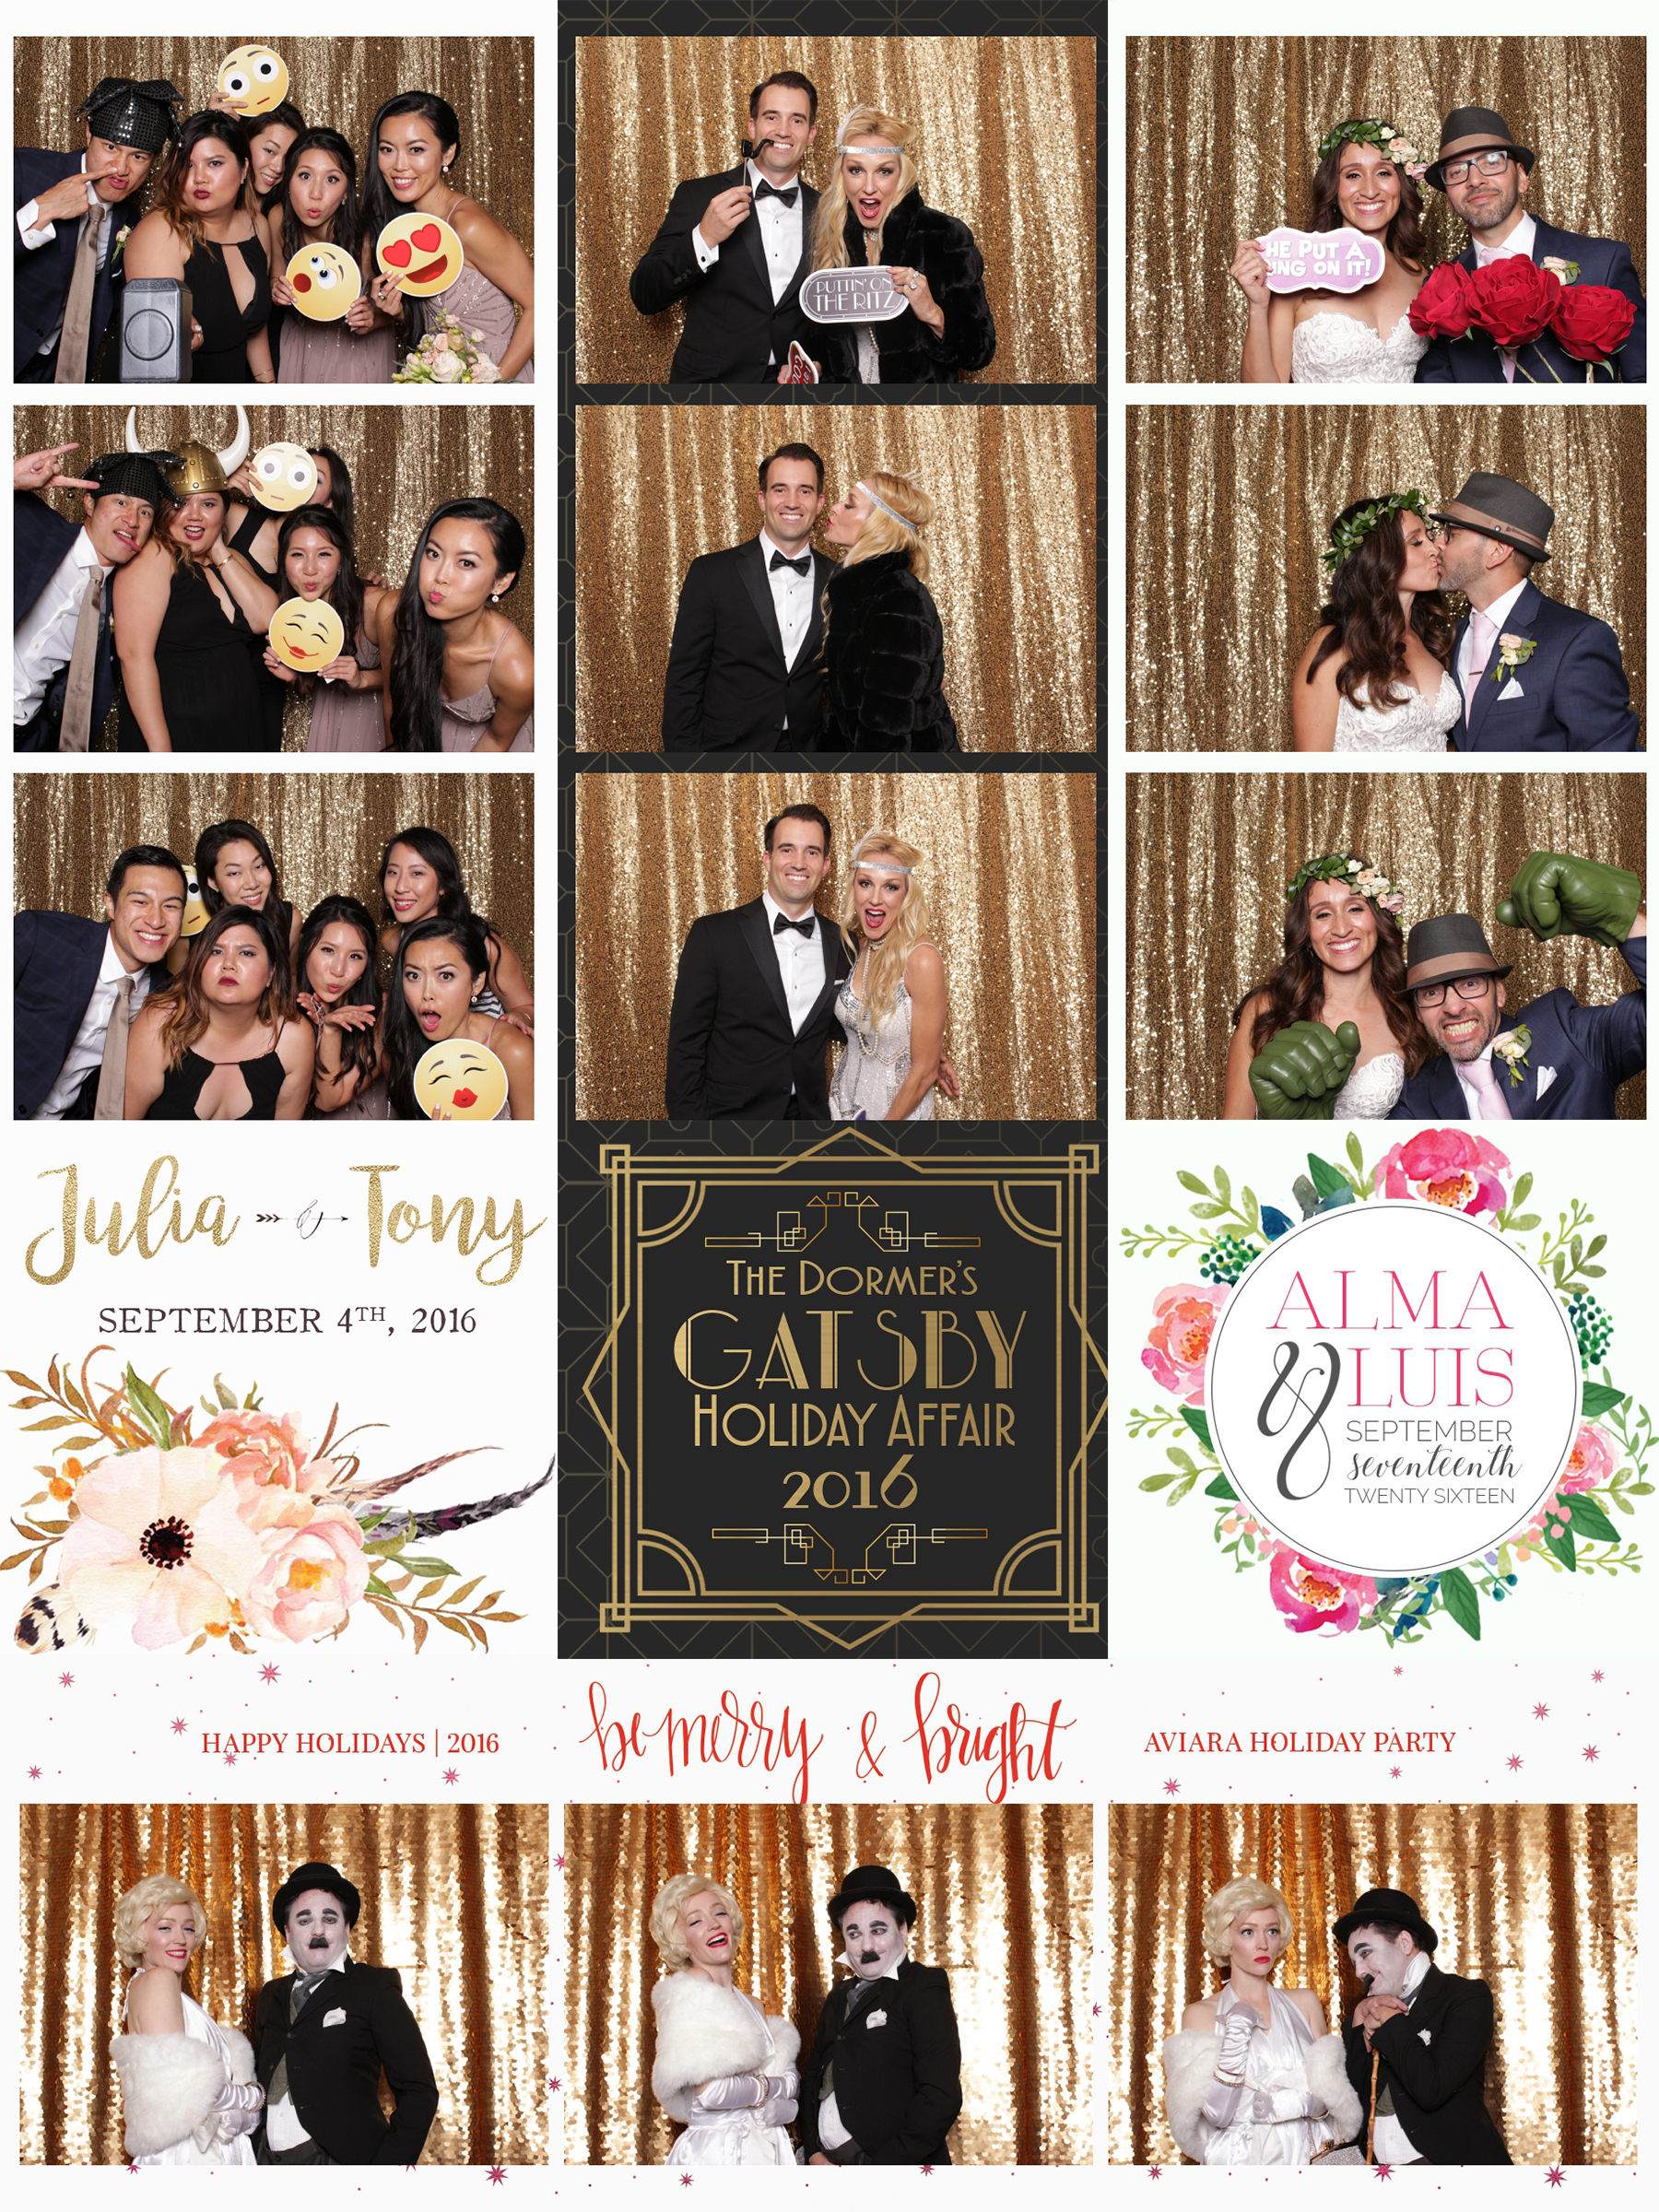 Custom Photo Booth Prints Photo Booth Photo Booth Rental LA - Photo booth design templates